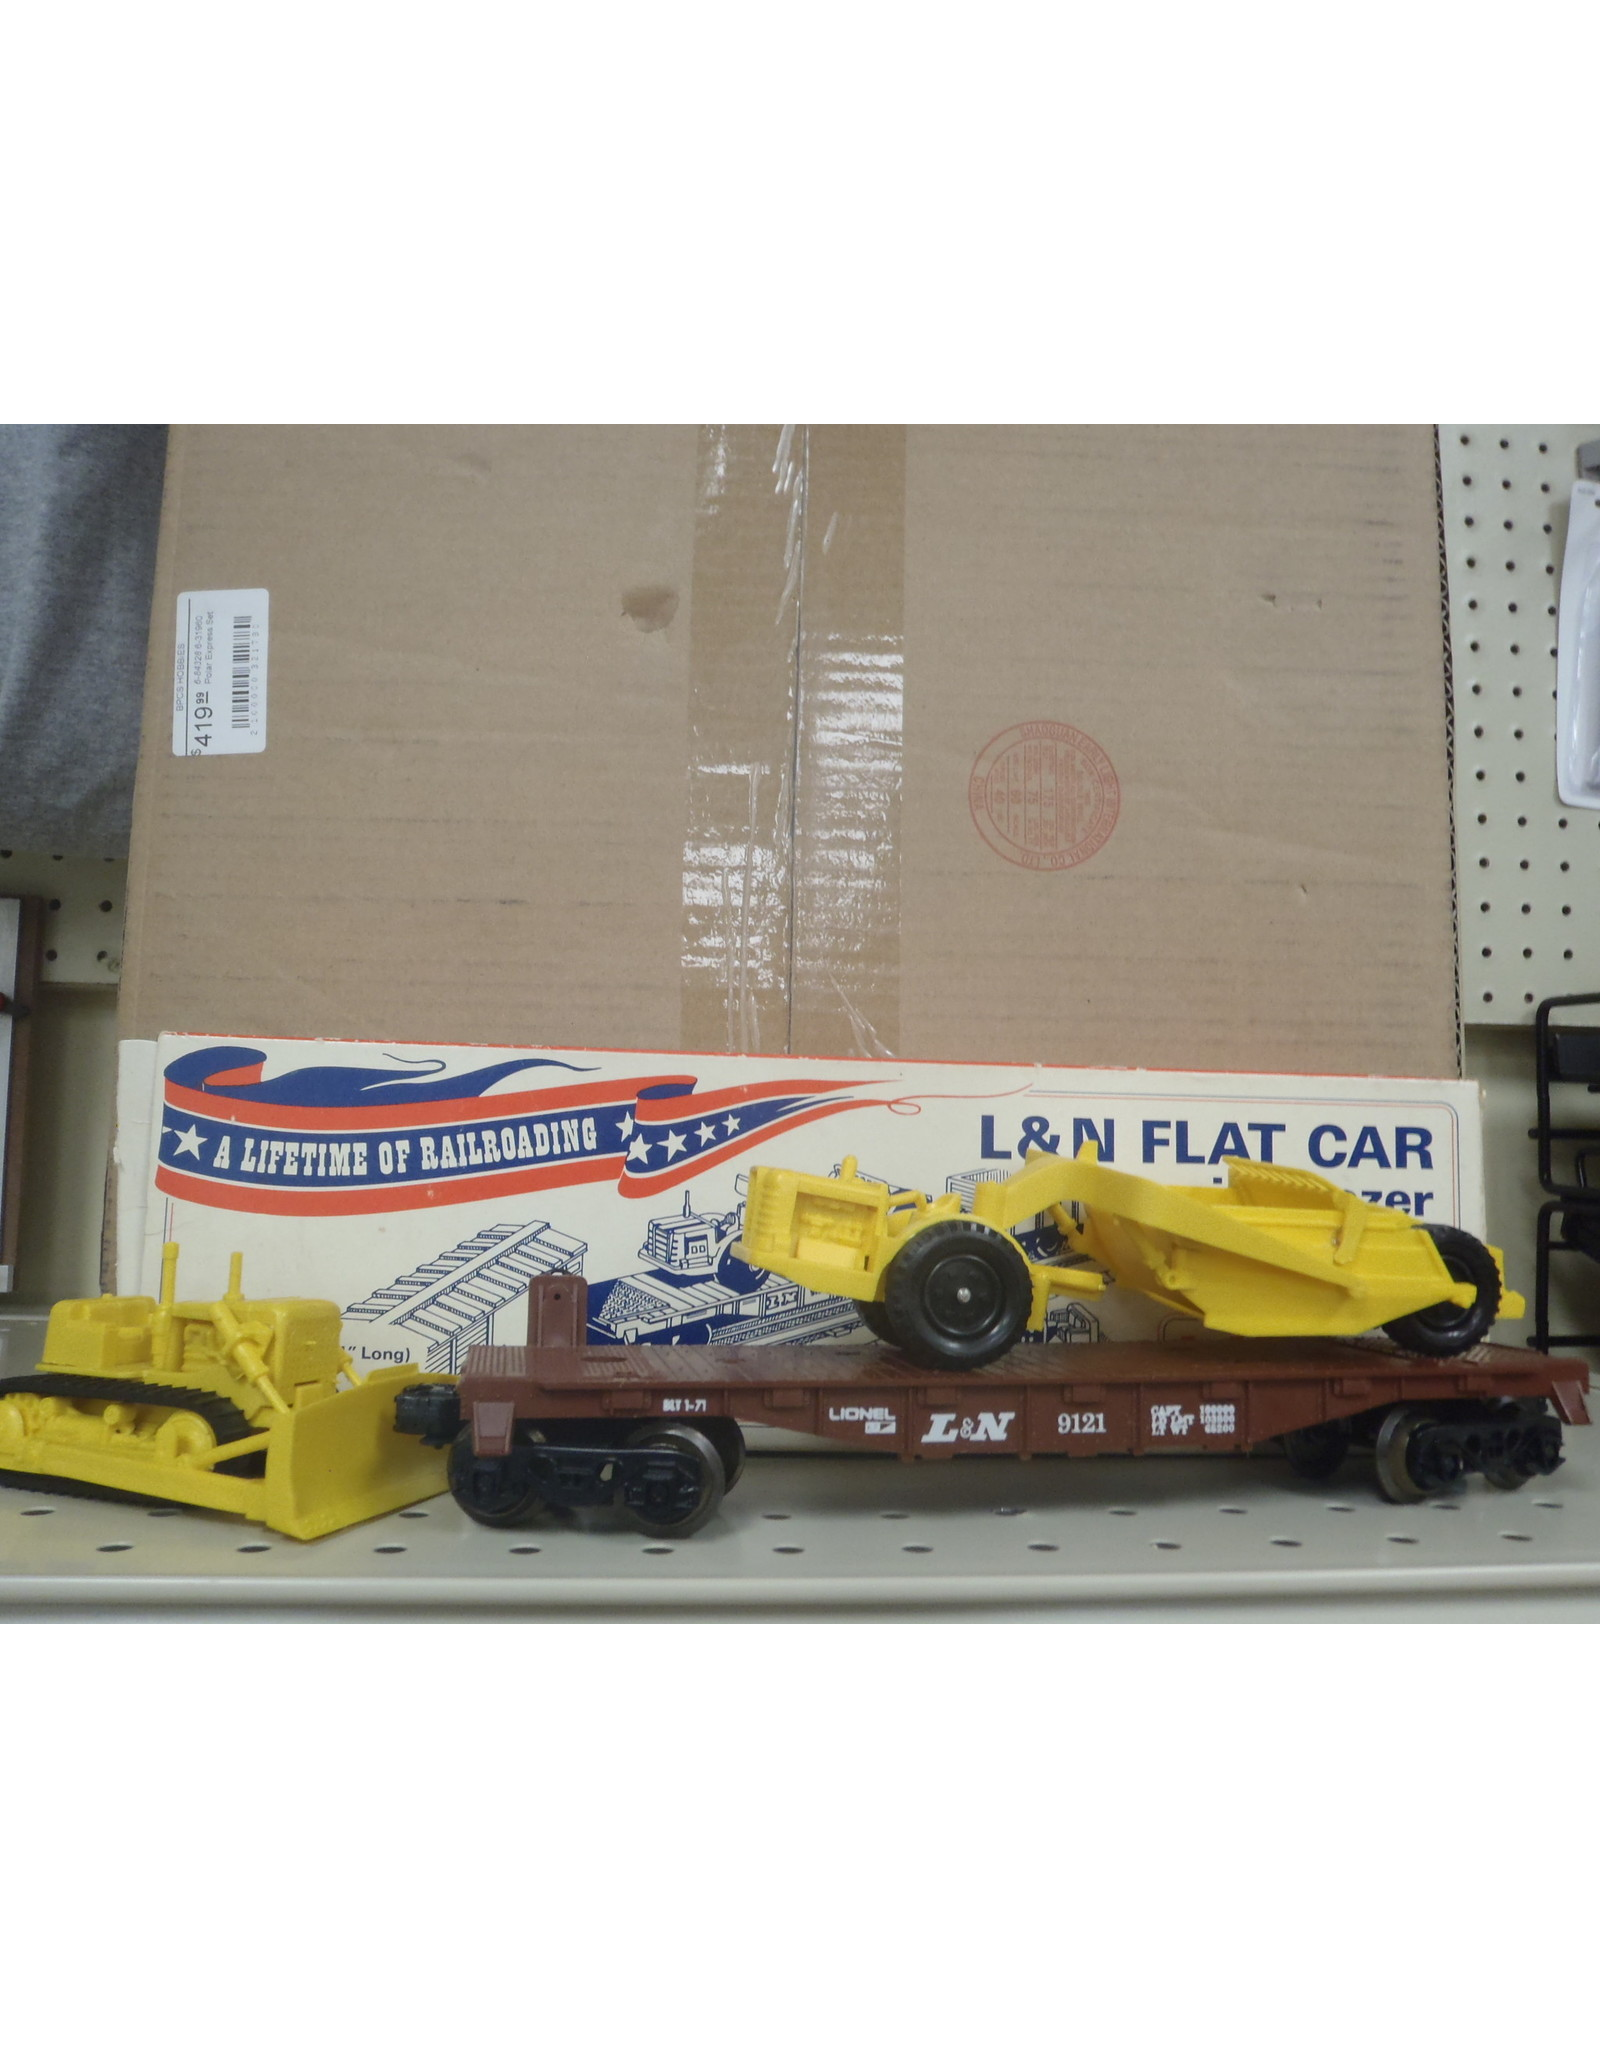 Lionel L & N Flat Car with dozer and scraper 6-9121